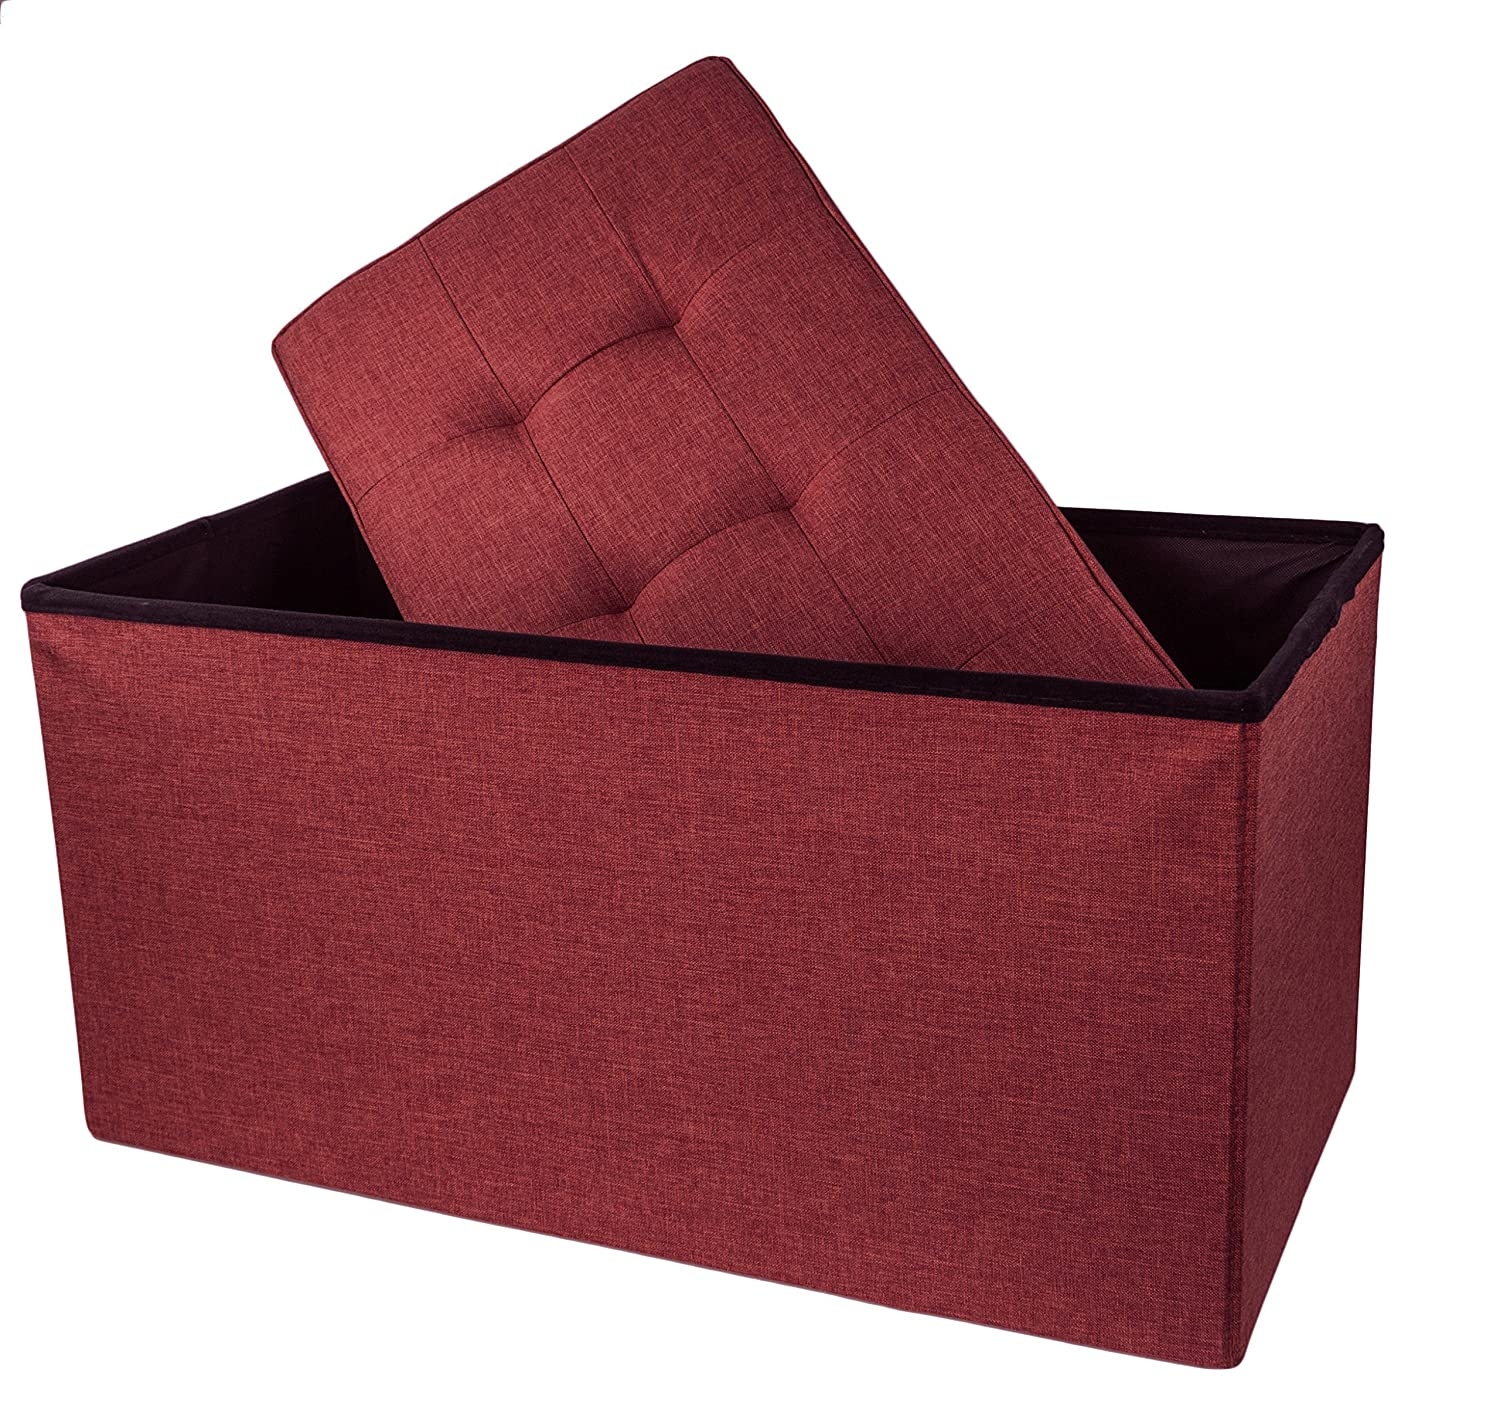 "Upholstered Folding Storage Ottoman with Padded Seat, 30"" x 16"" x 16"" - Burgundy"